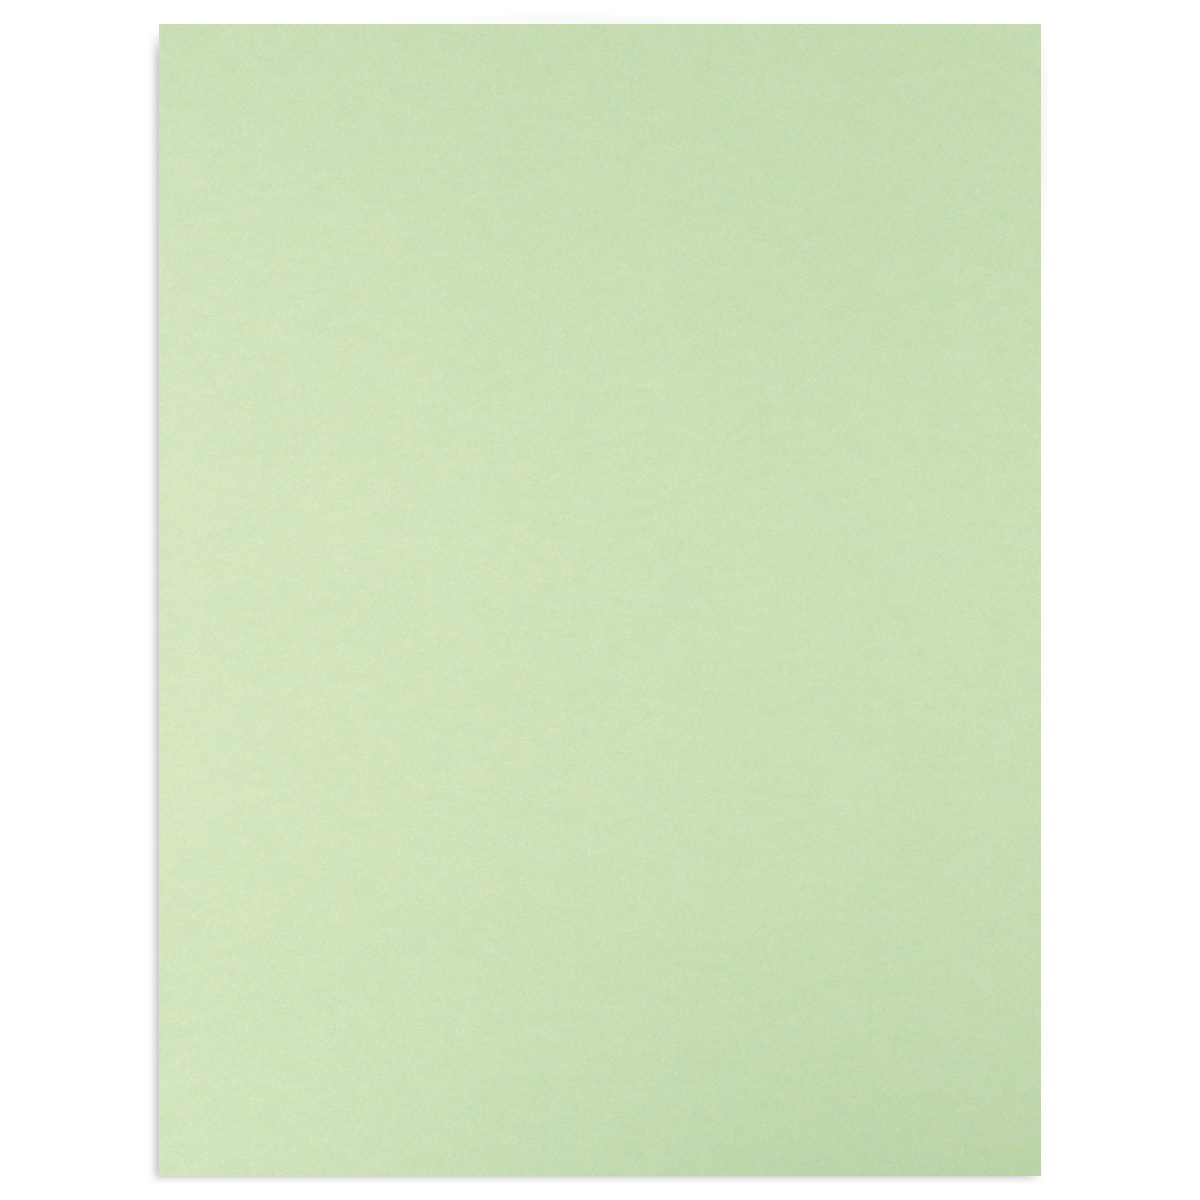 Cartulina de Colores Royal Cast / 1 pieza / Carta / Verde pastel / 170 gr